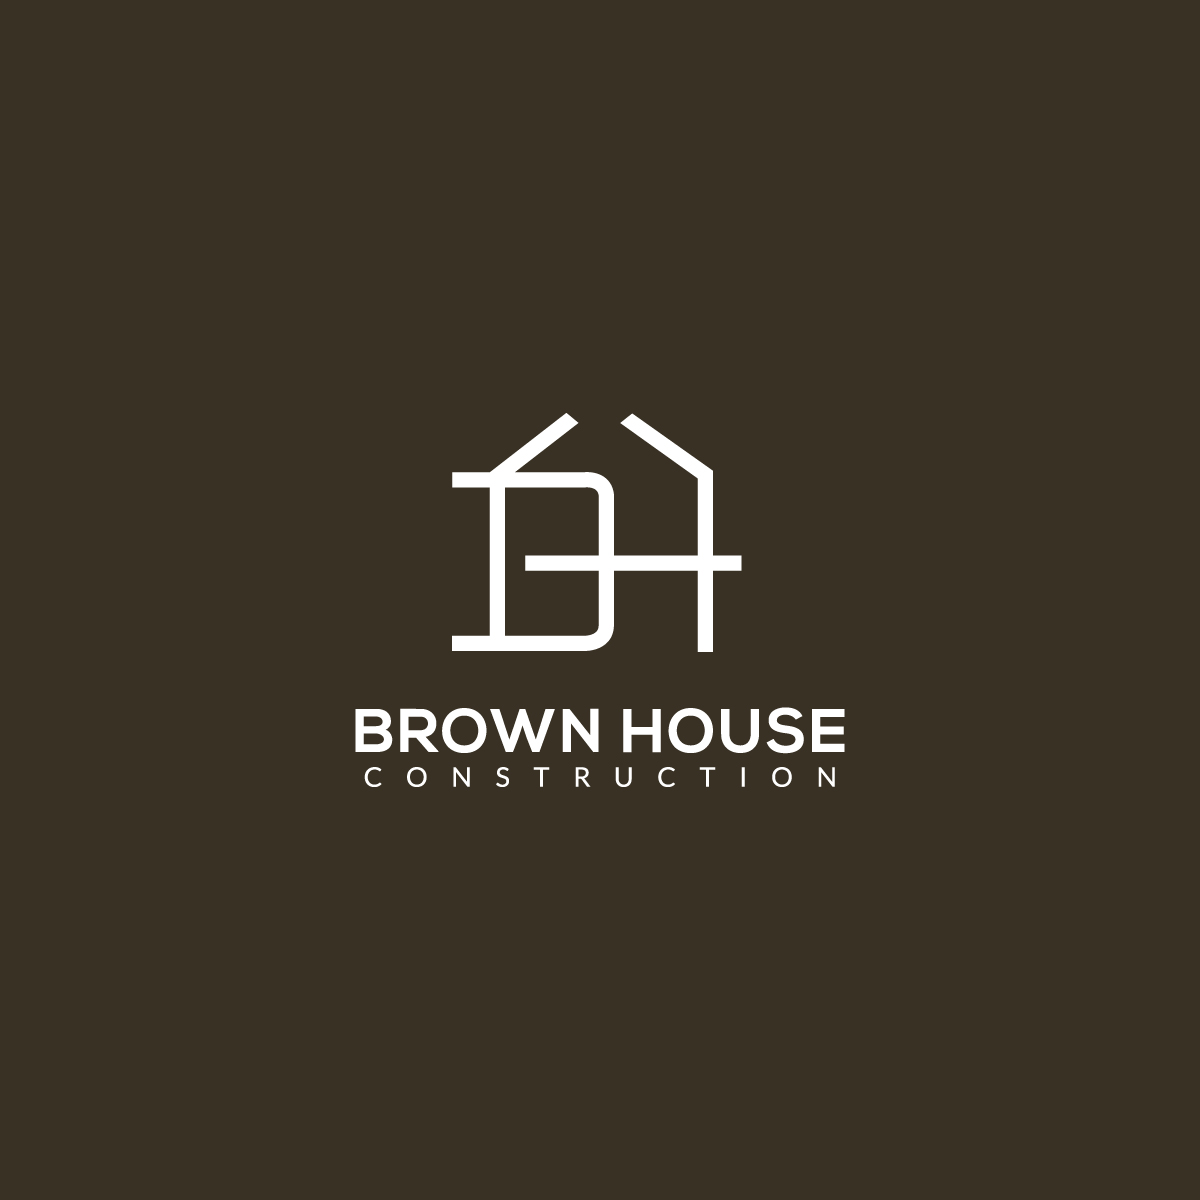 Brown House Construction logo by **INCREDIBLEDESIGNERS** for a new home construction and renovation company